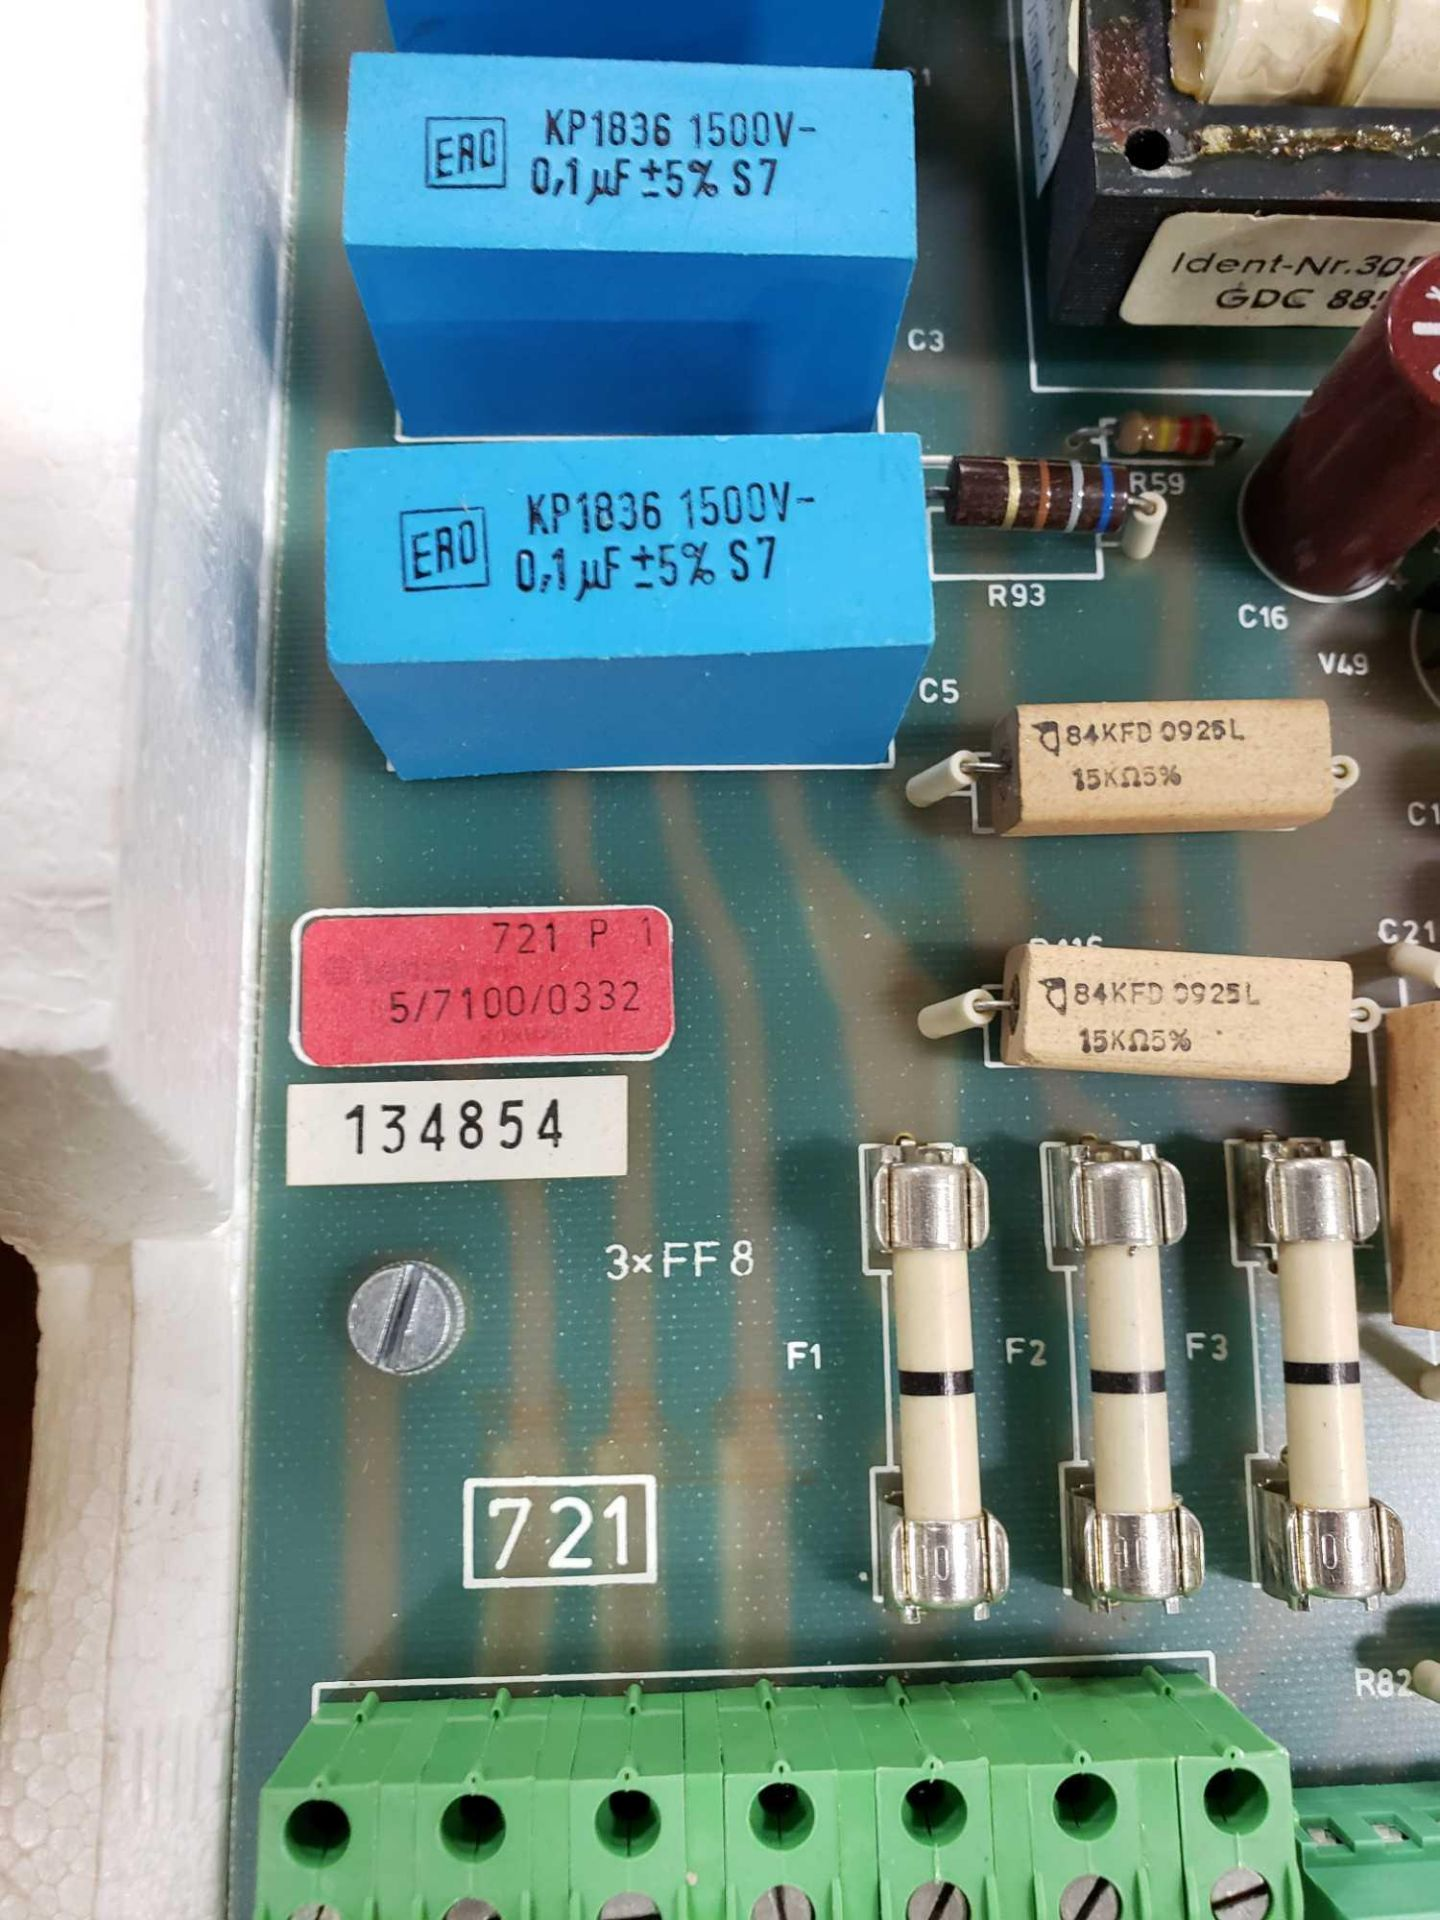 Lot 34 - Stahlkontor control model 721-E2. New as pictured.